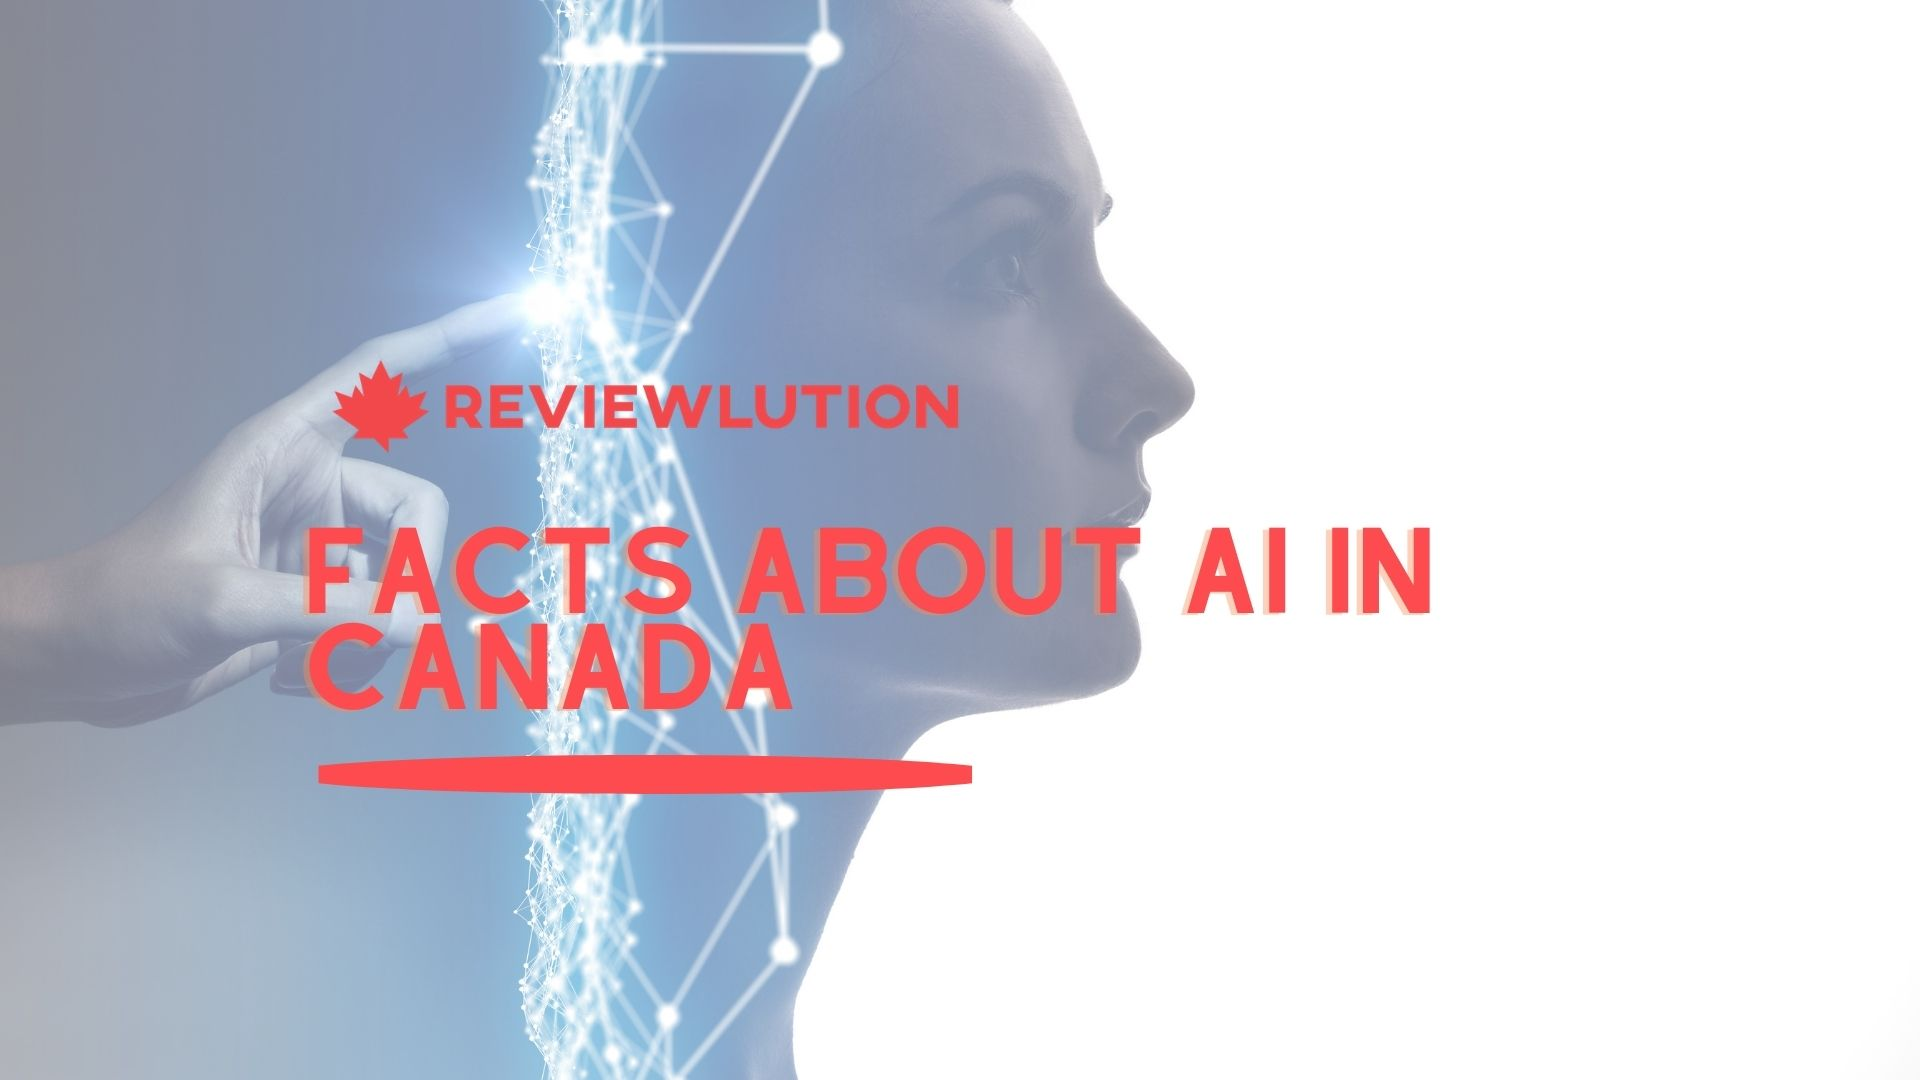 17 Exciting Facts about AI in Canada [The View from 2021]